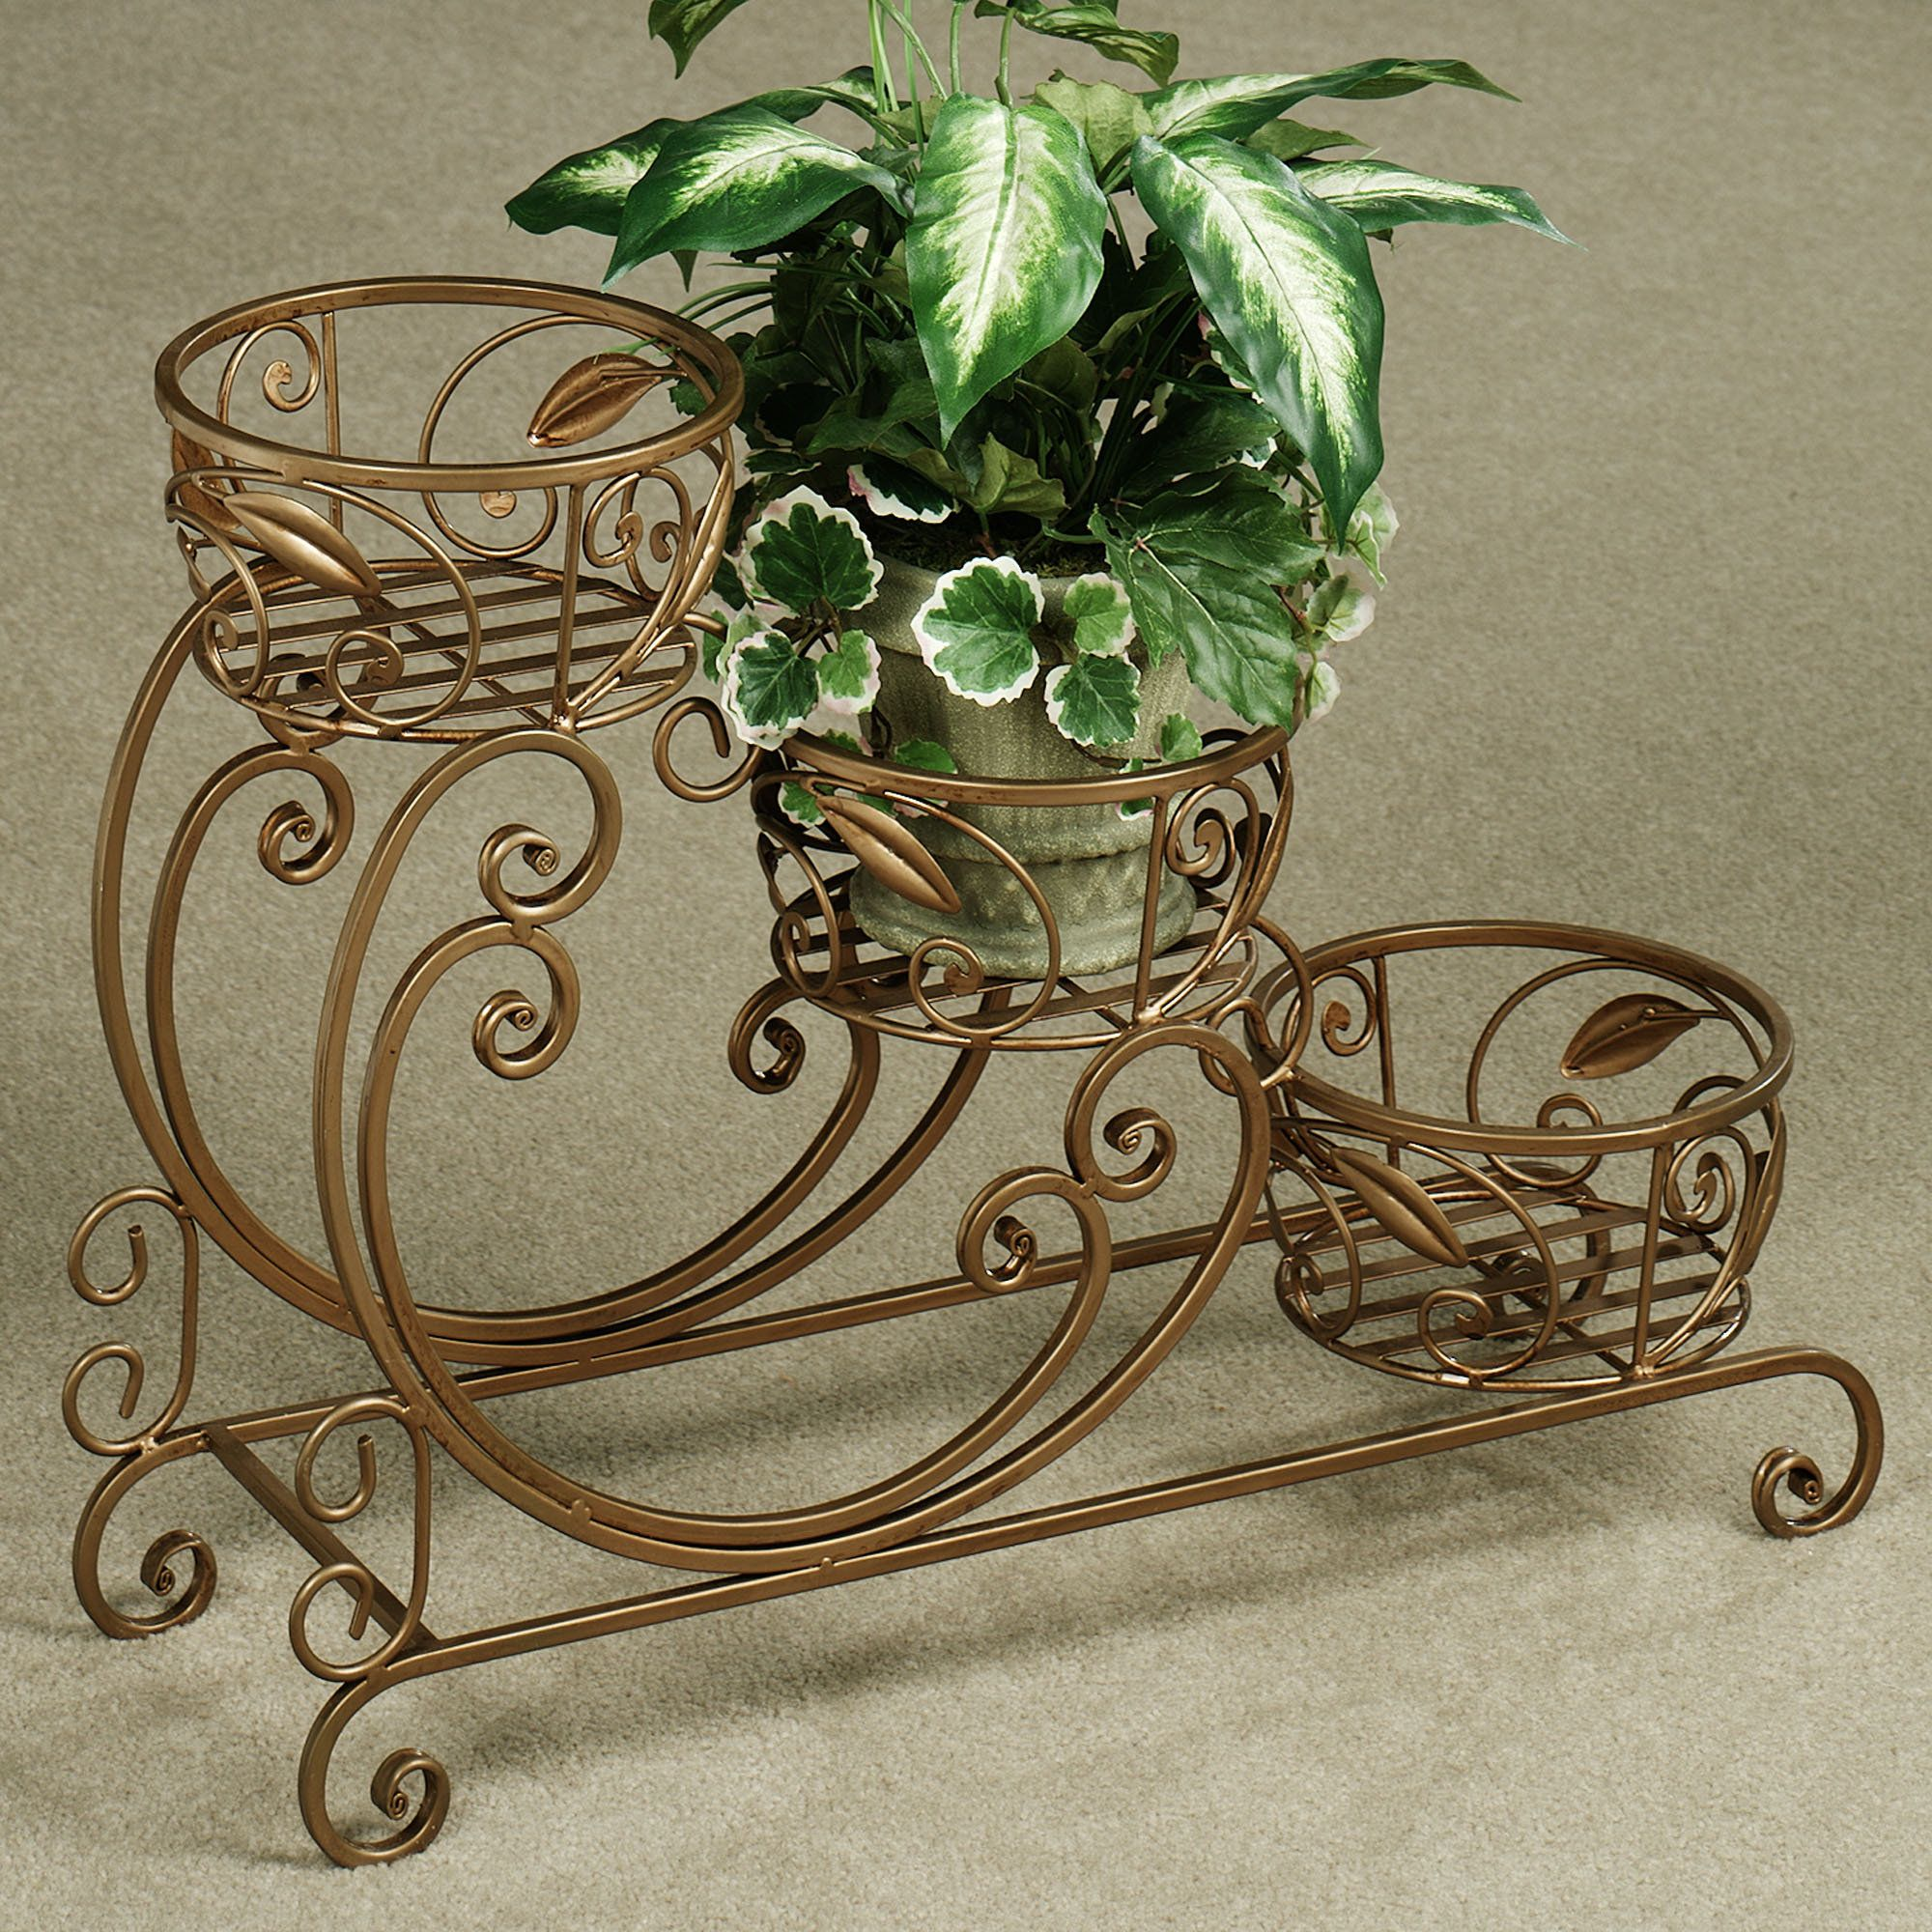 Tiered Contemporary Urban Garden: Amberly 3 Tier Metal Plant Stand